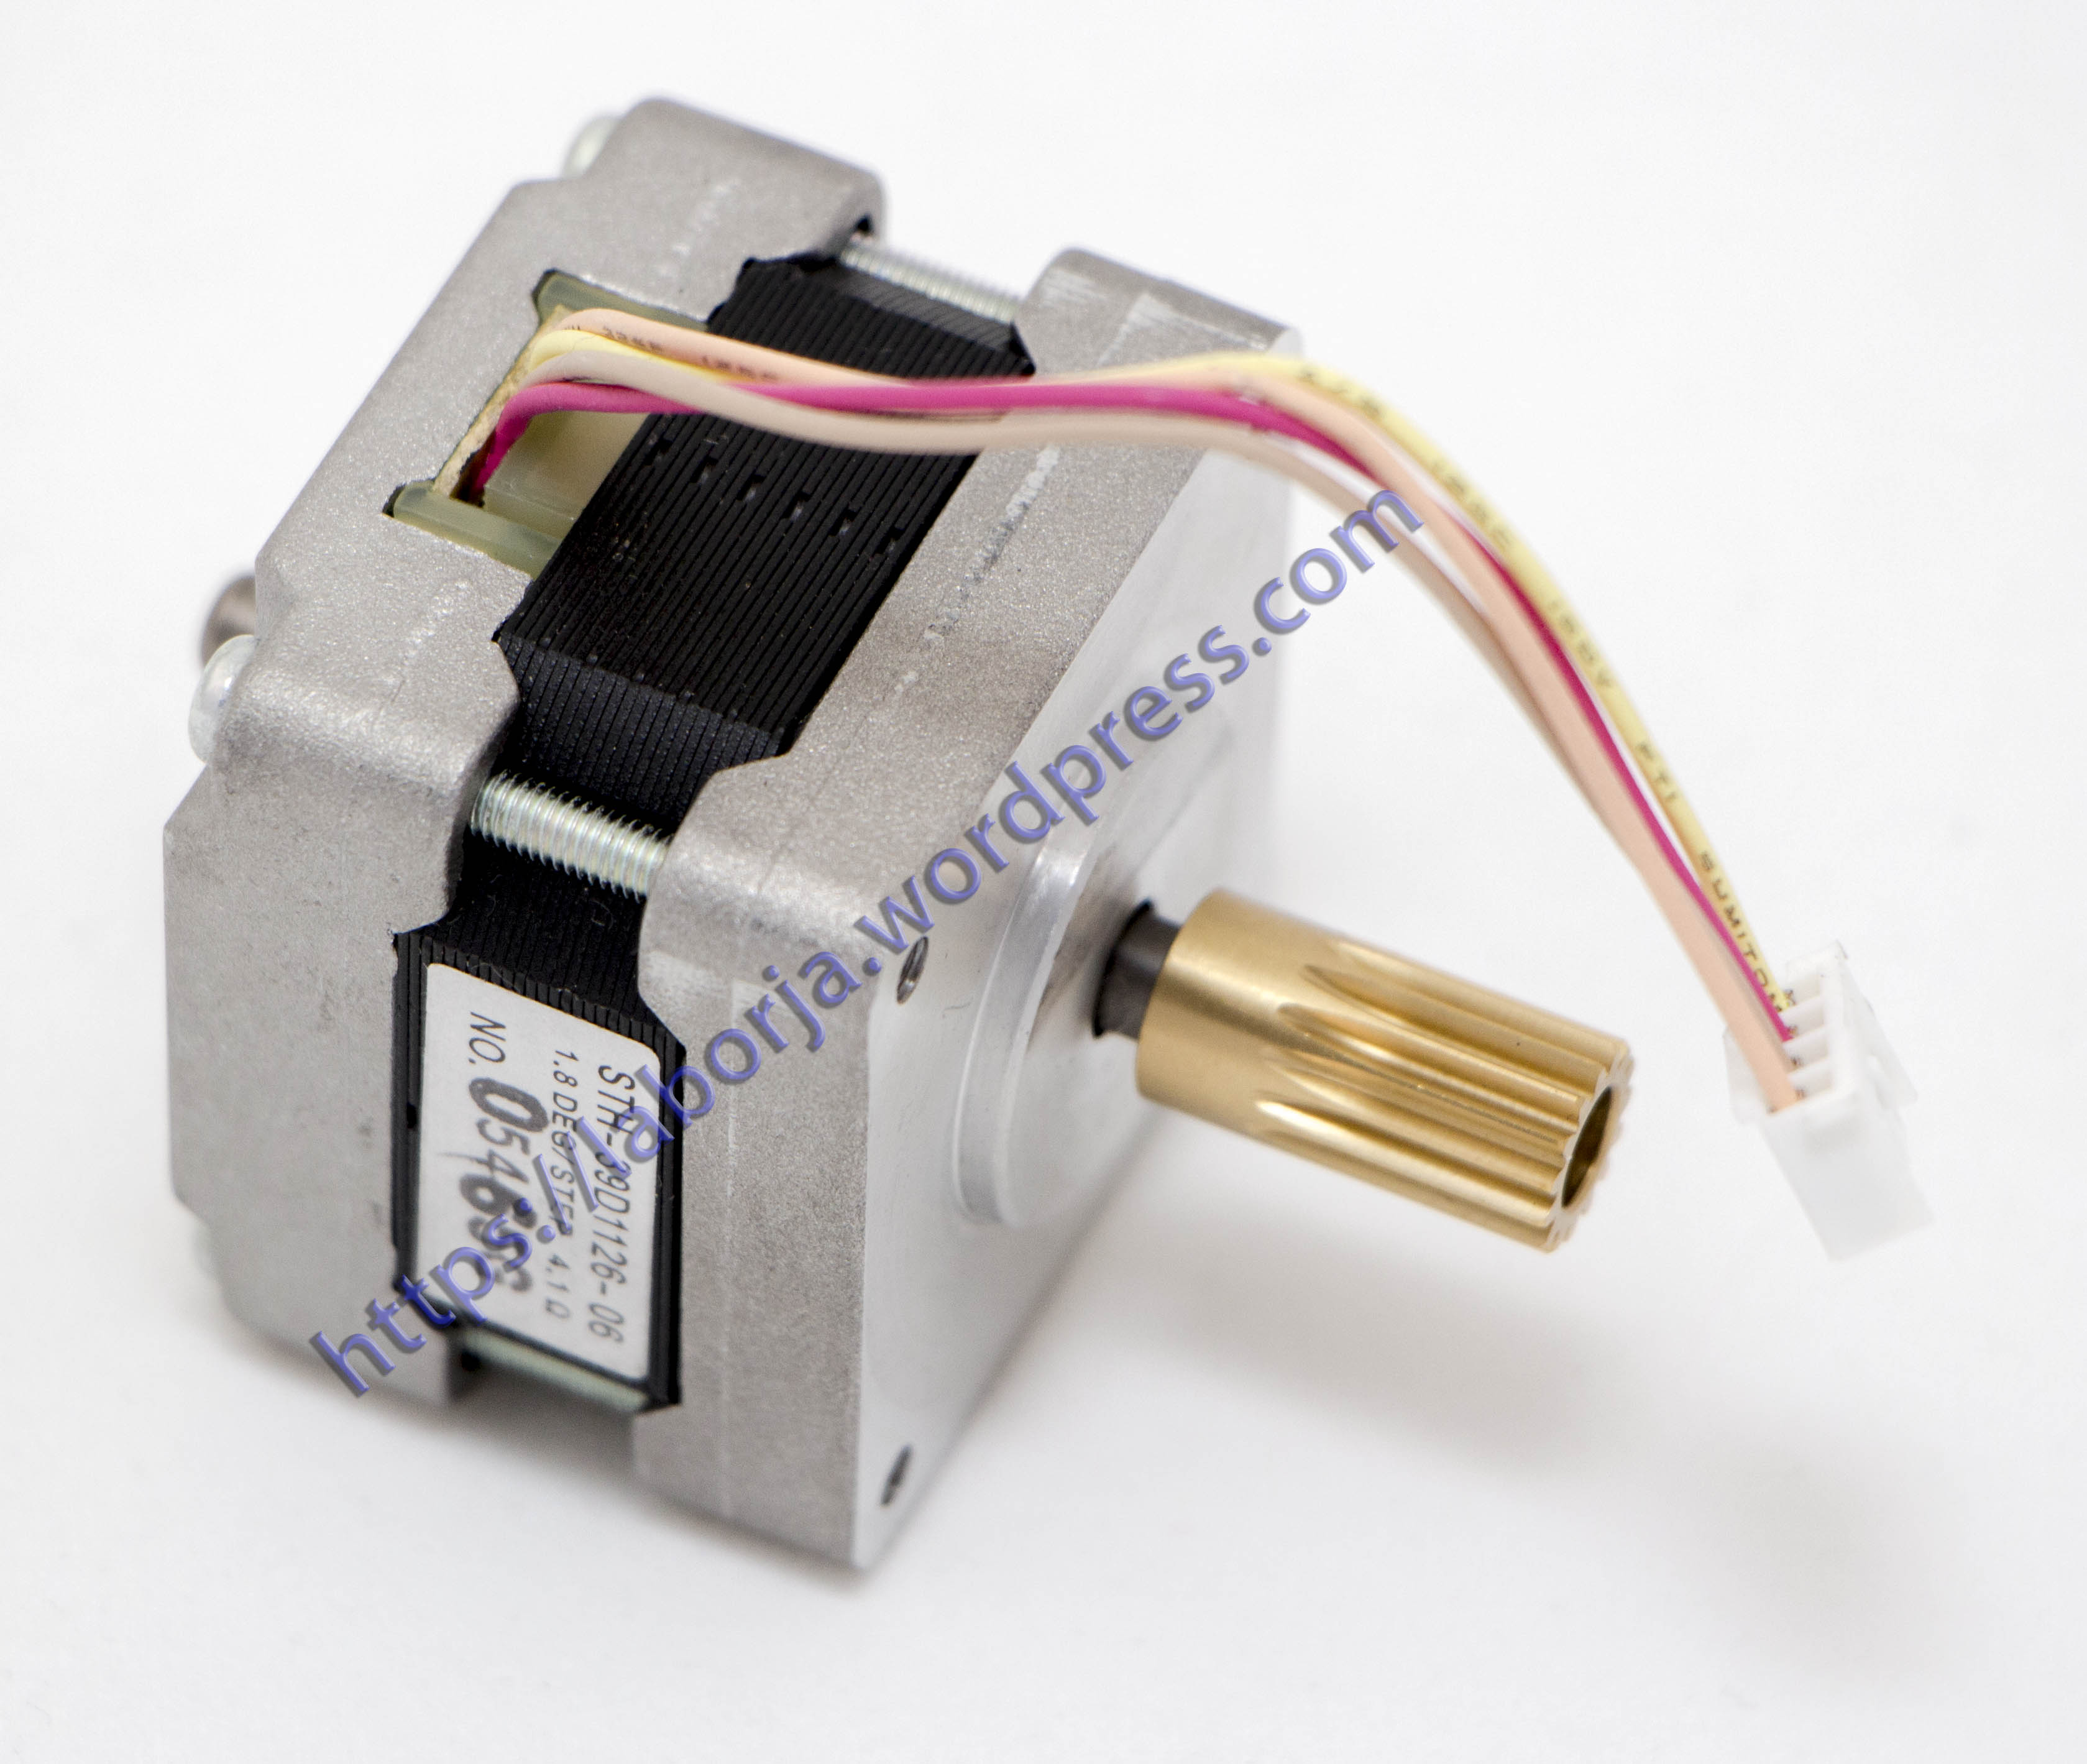 Stepper Motor STH-39D1126-06 | Borja Home Page